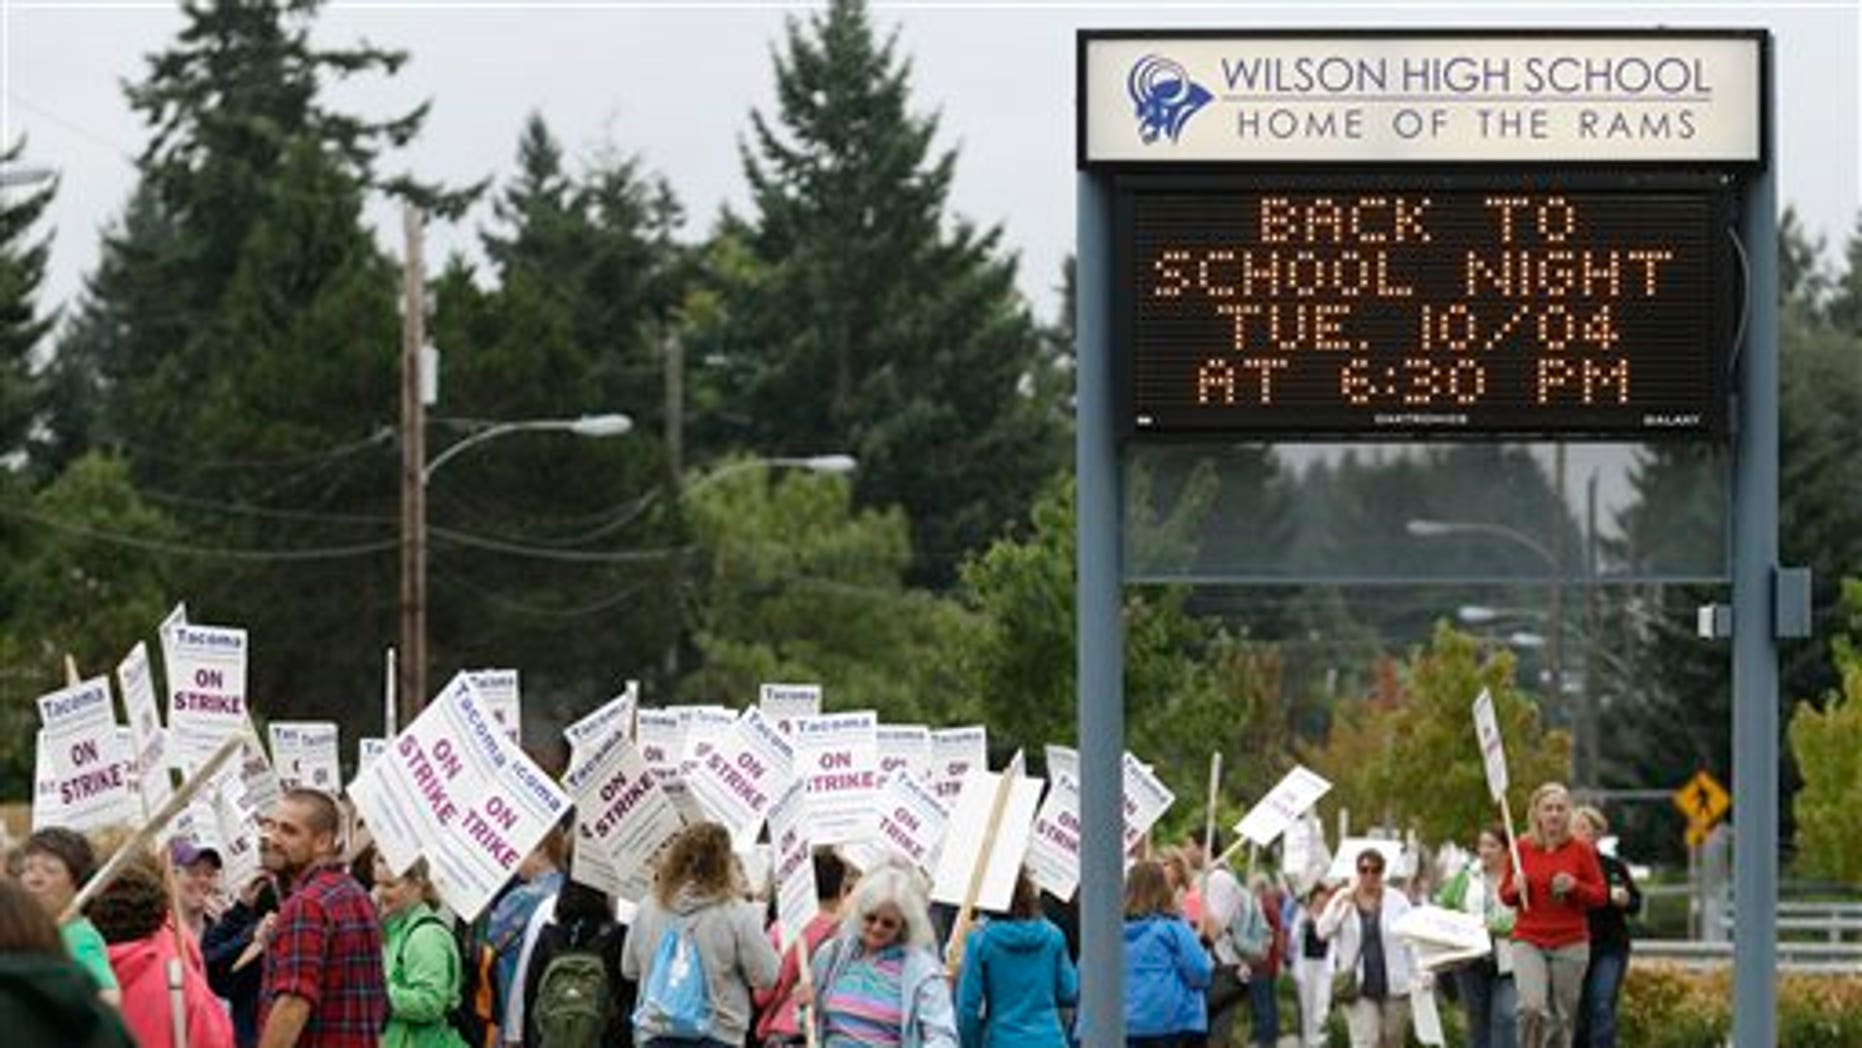 School District Looks for Court to Order Striking Teachers